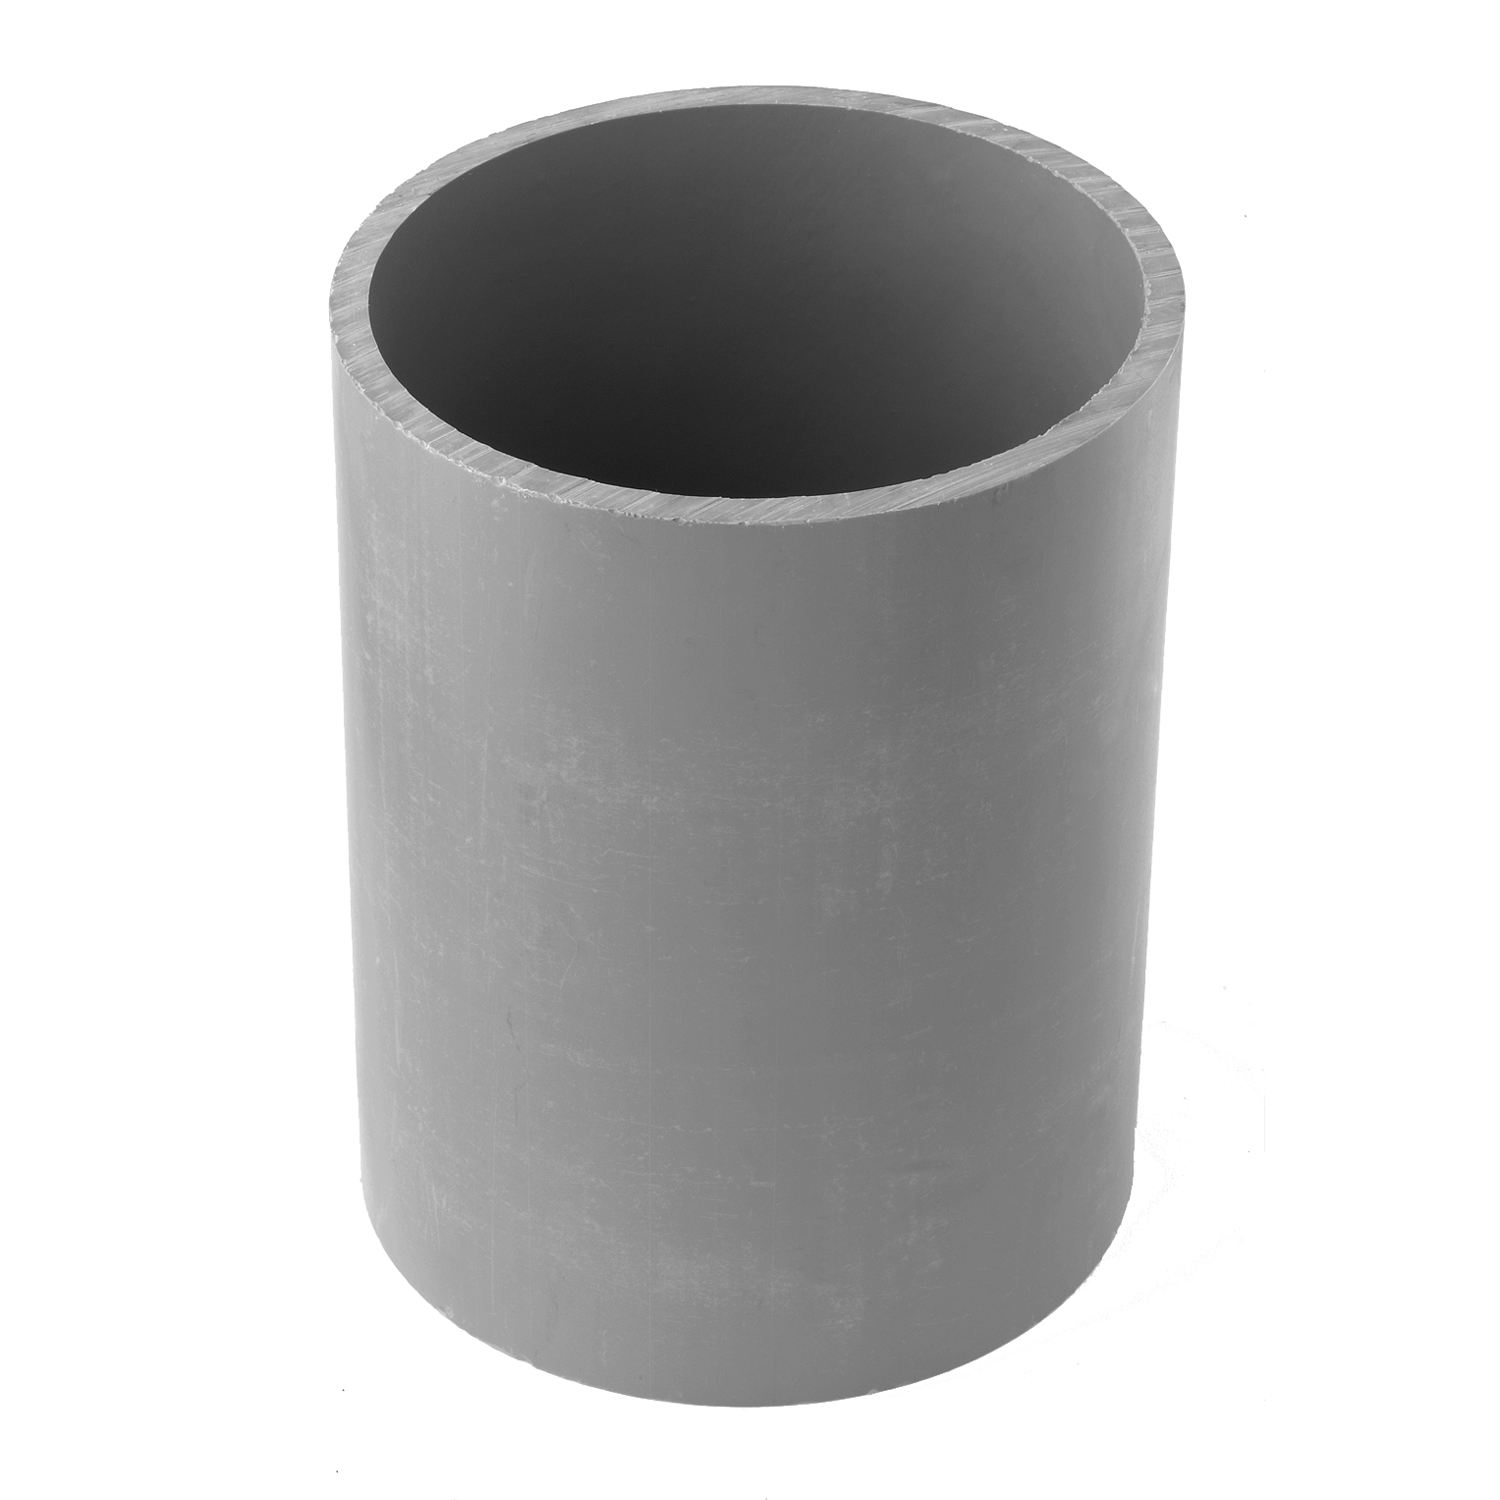 3 INCH P&C SLEEVE COUPLING